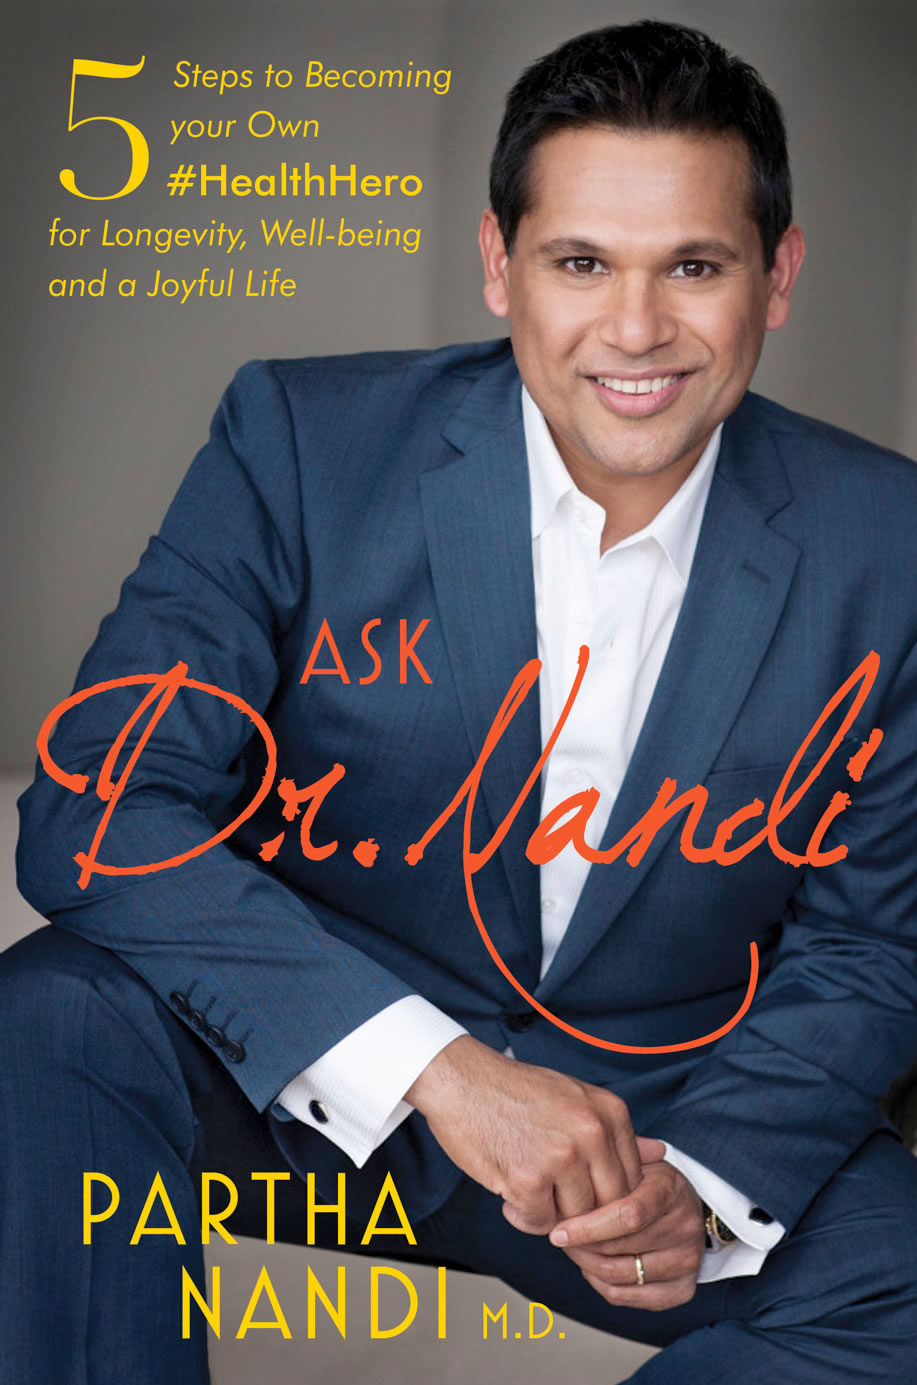 Image: ASK DR. NANDI: 5 Steps to Becoming your Own #HealthHero for Longevity, Well-being, and a Joyful Life